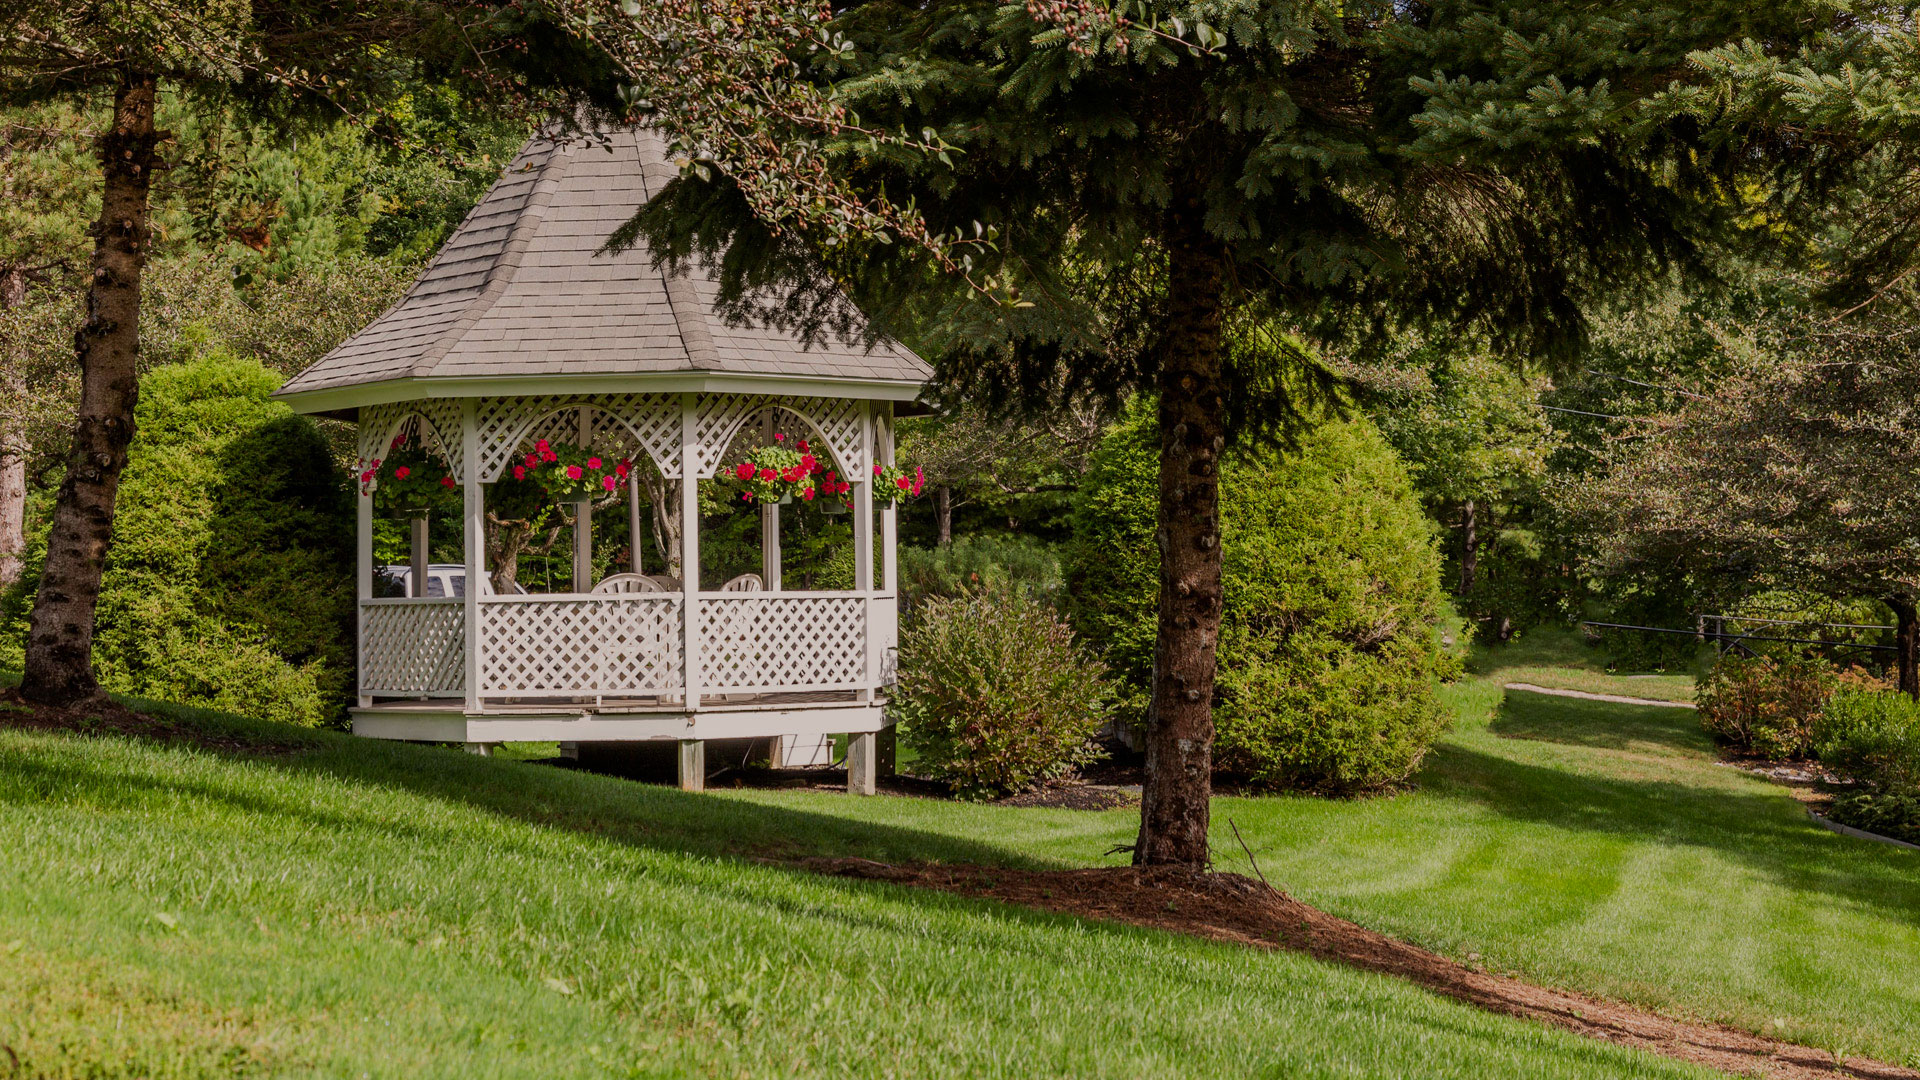 Gazebo at the Ridges